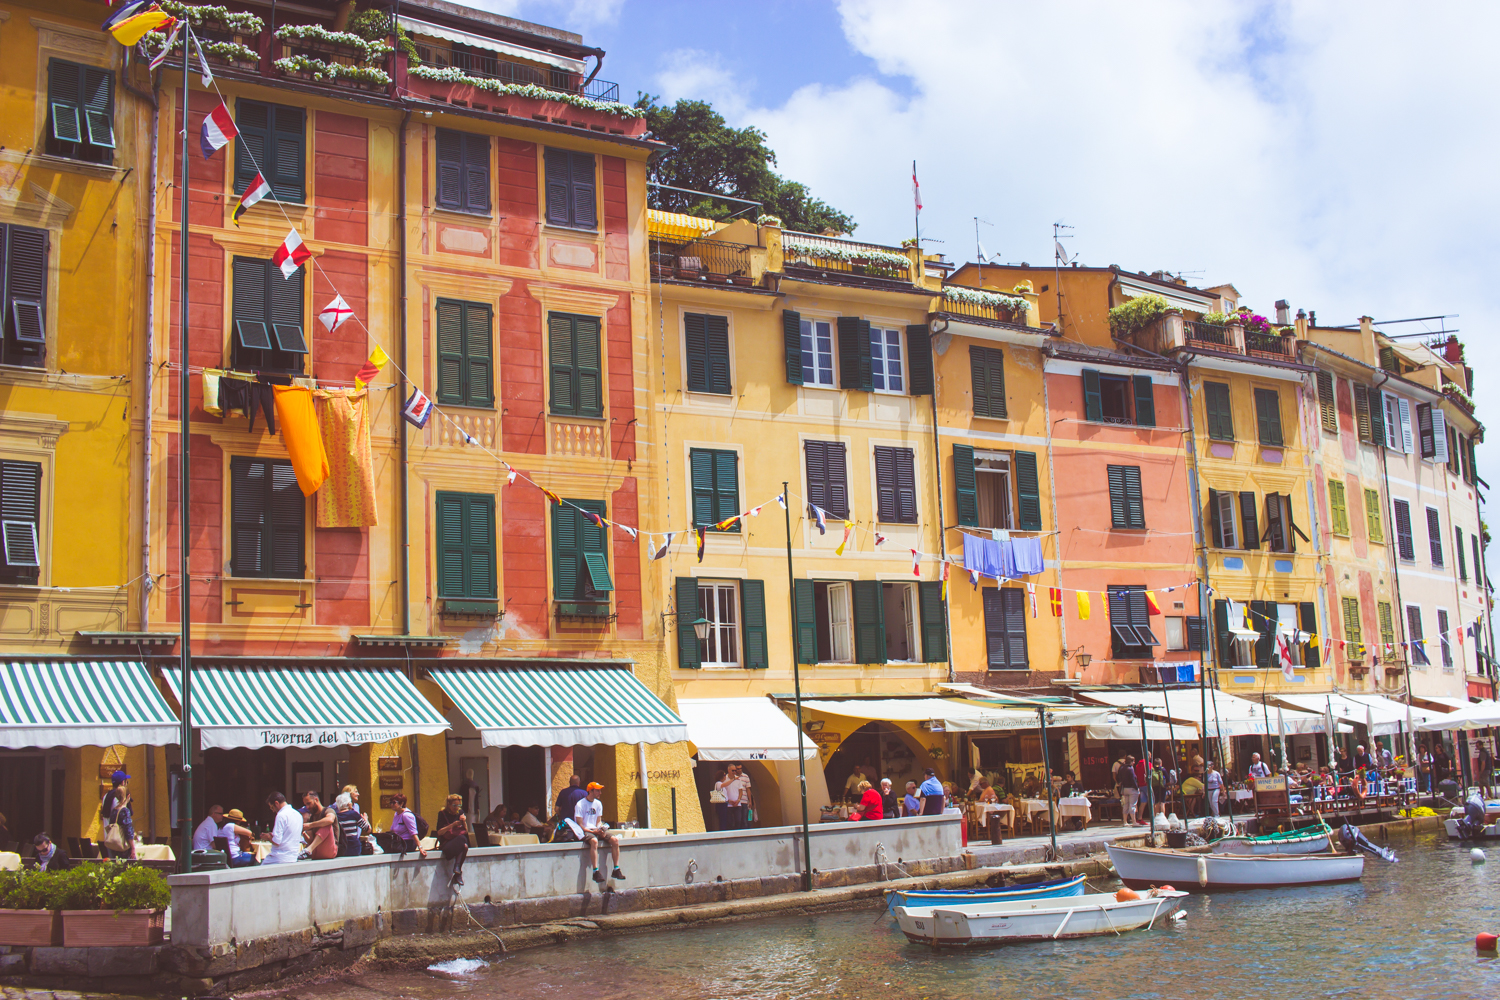 livvyland-blog-olivia-watson-austin-texas-fashion-travel-blogger-princess-royal-mediterranean-cruise-portofino-cinque-terre-italy-what-to-do-see-eat-17